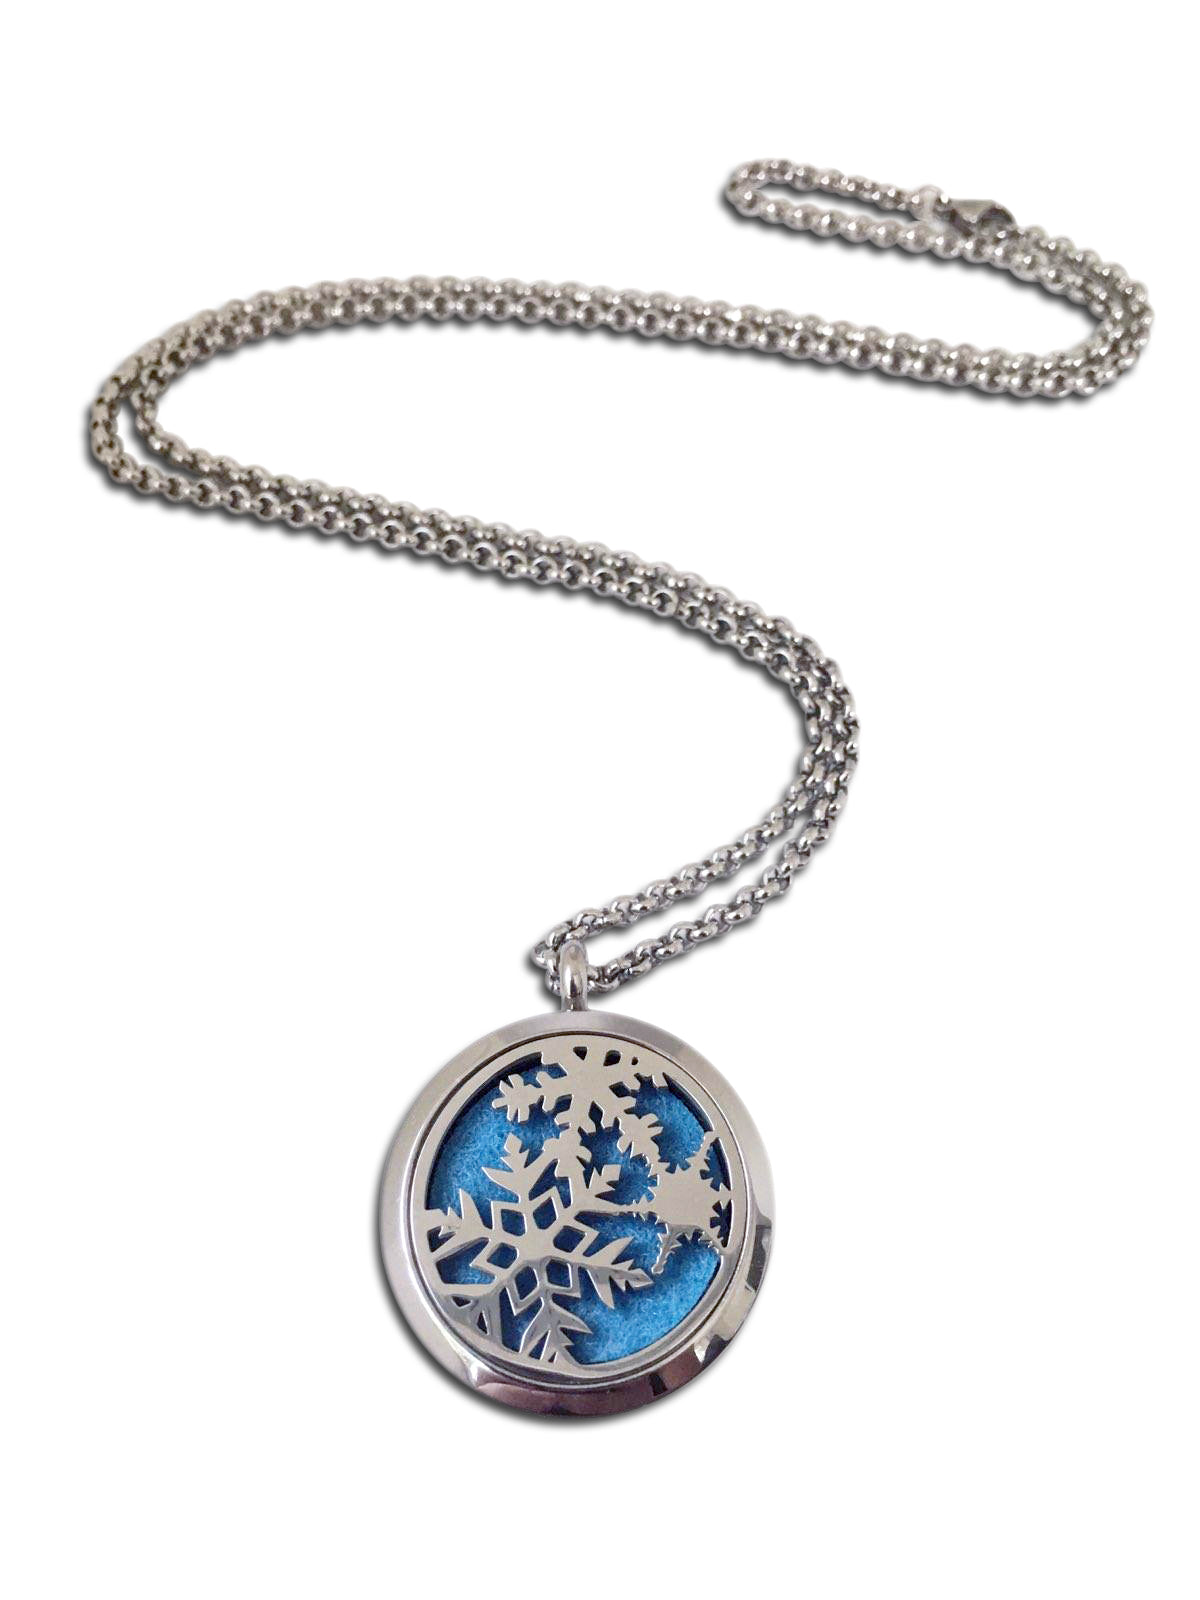 Stainless Steel Snowflake Diffuser Necklace